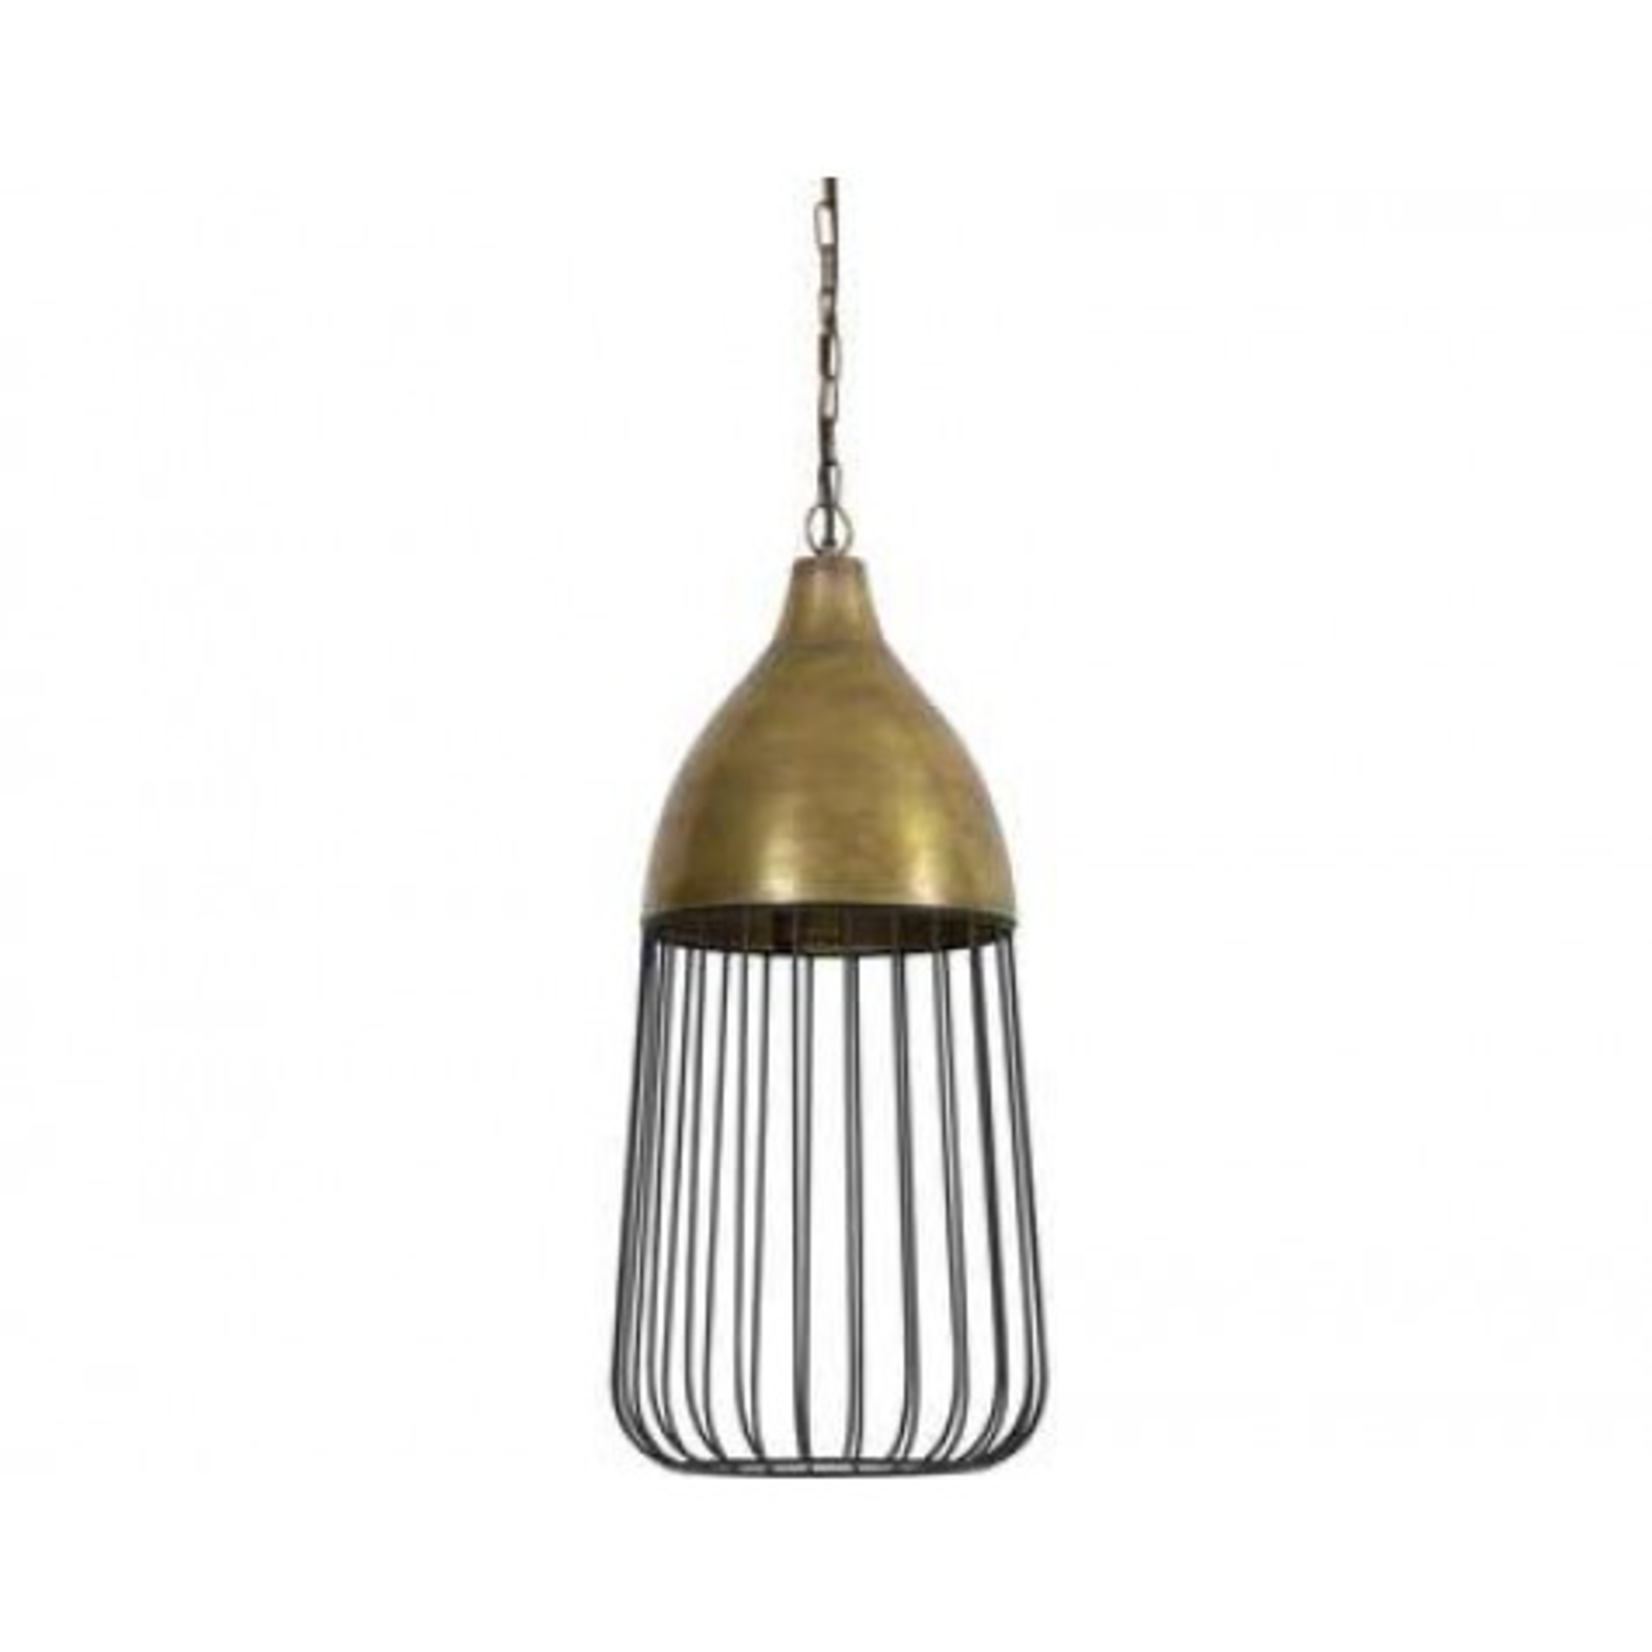 Light & Living DISCOUNTED Due to to minor flaws in Finish VIEW THIS IN THE DETAIL IMAGE. Undine antique bronze & black hanging lamp 28x59cm